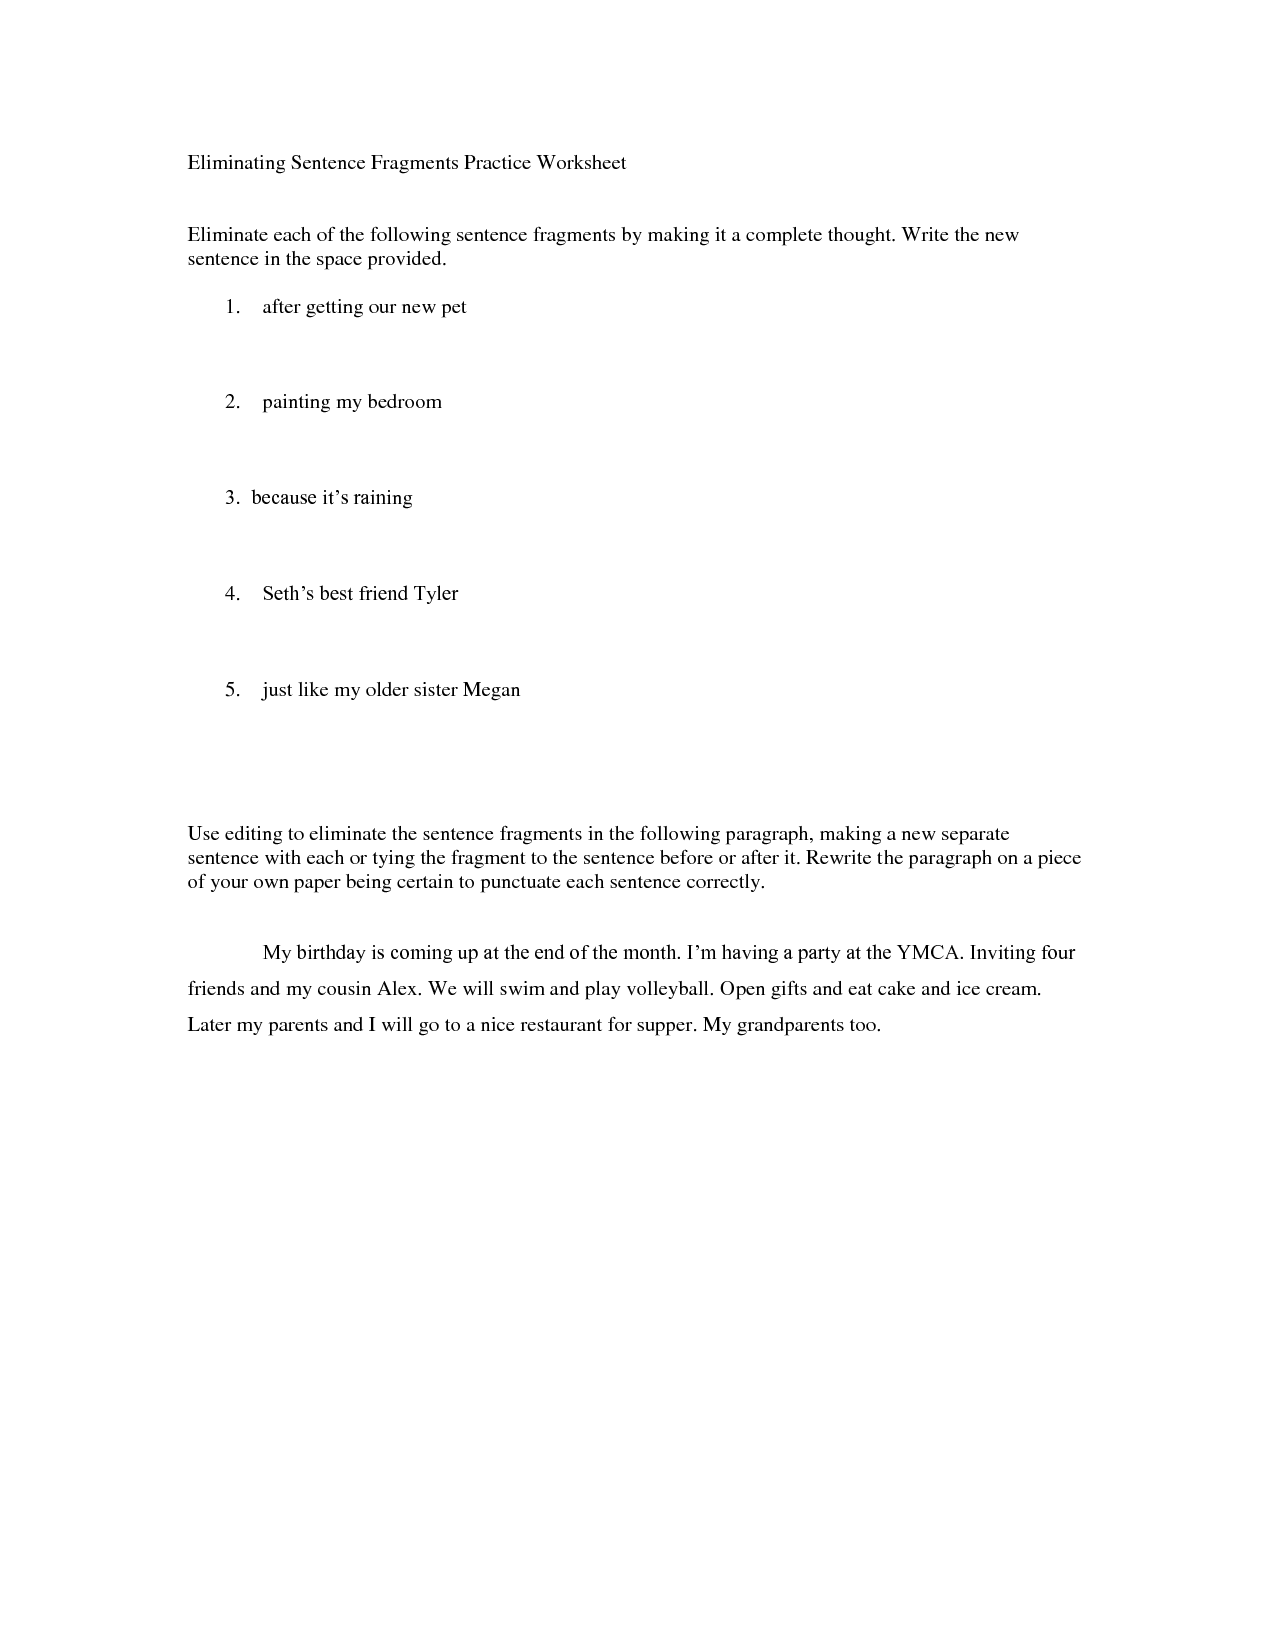 Sentence Fragments Worksheet